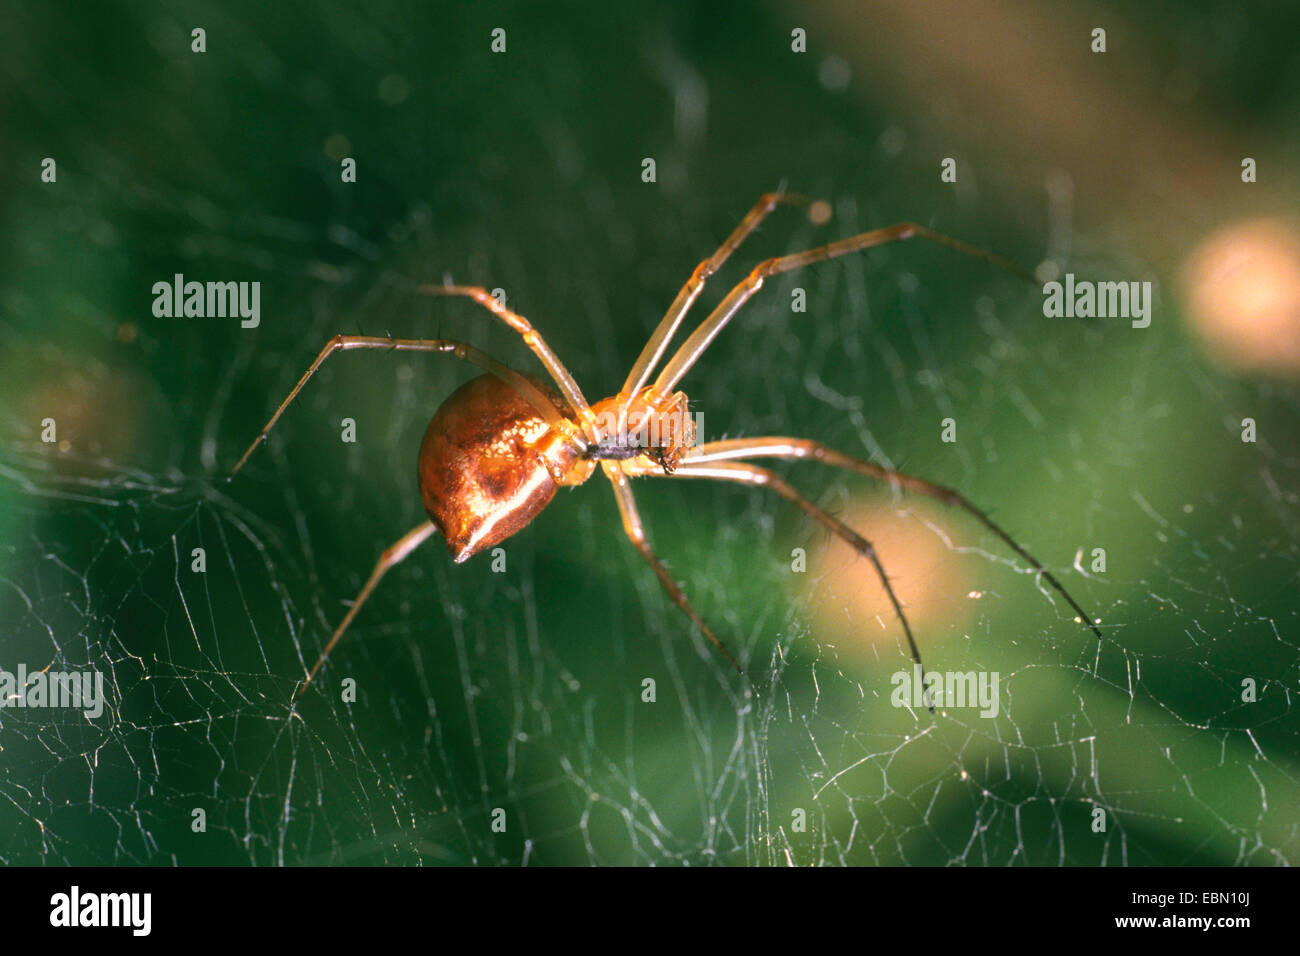 Sheet-web weaver, Line-weaving spider, Line weaver (Linyphia triangularis), sitting in the spider web, Germany - Stock Image